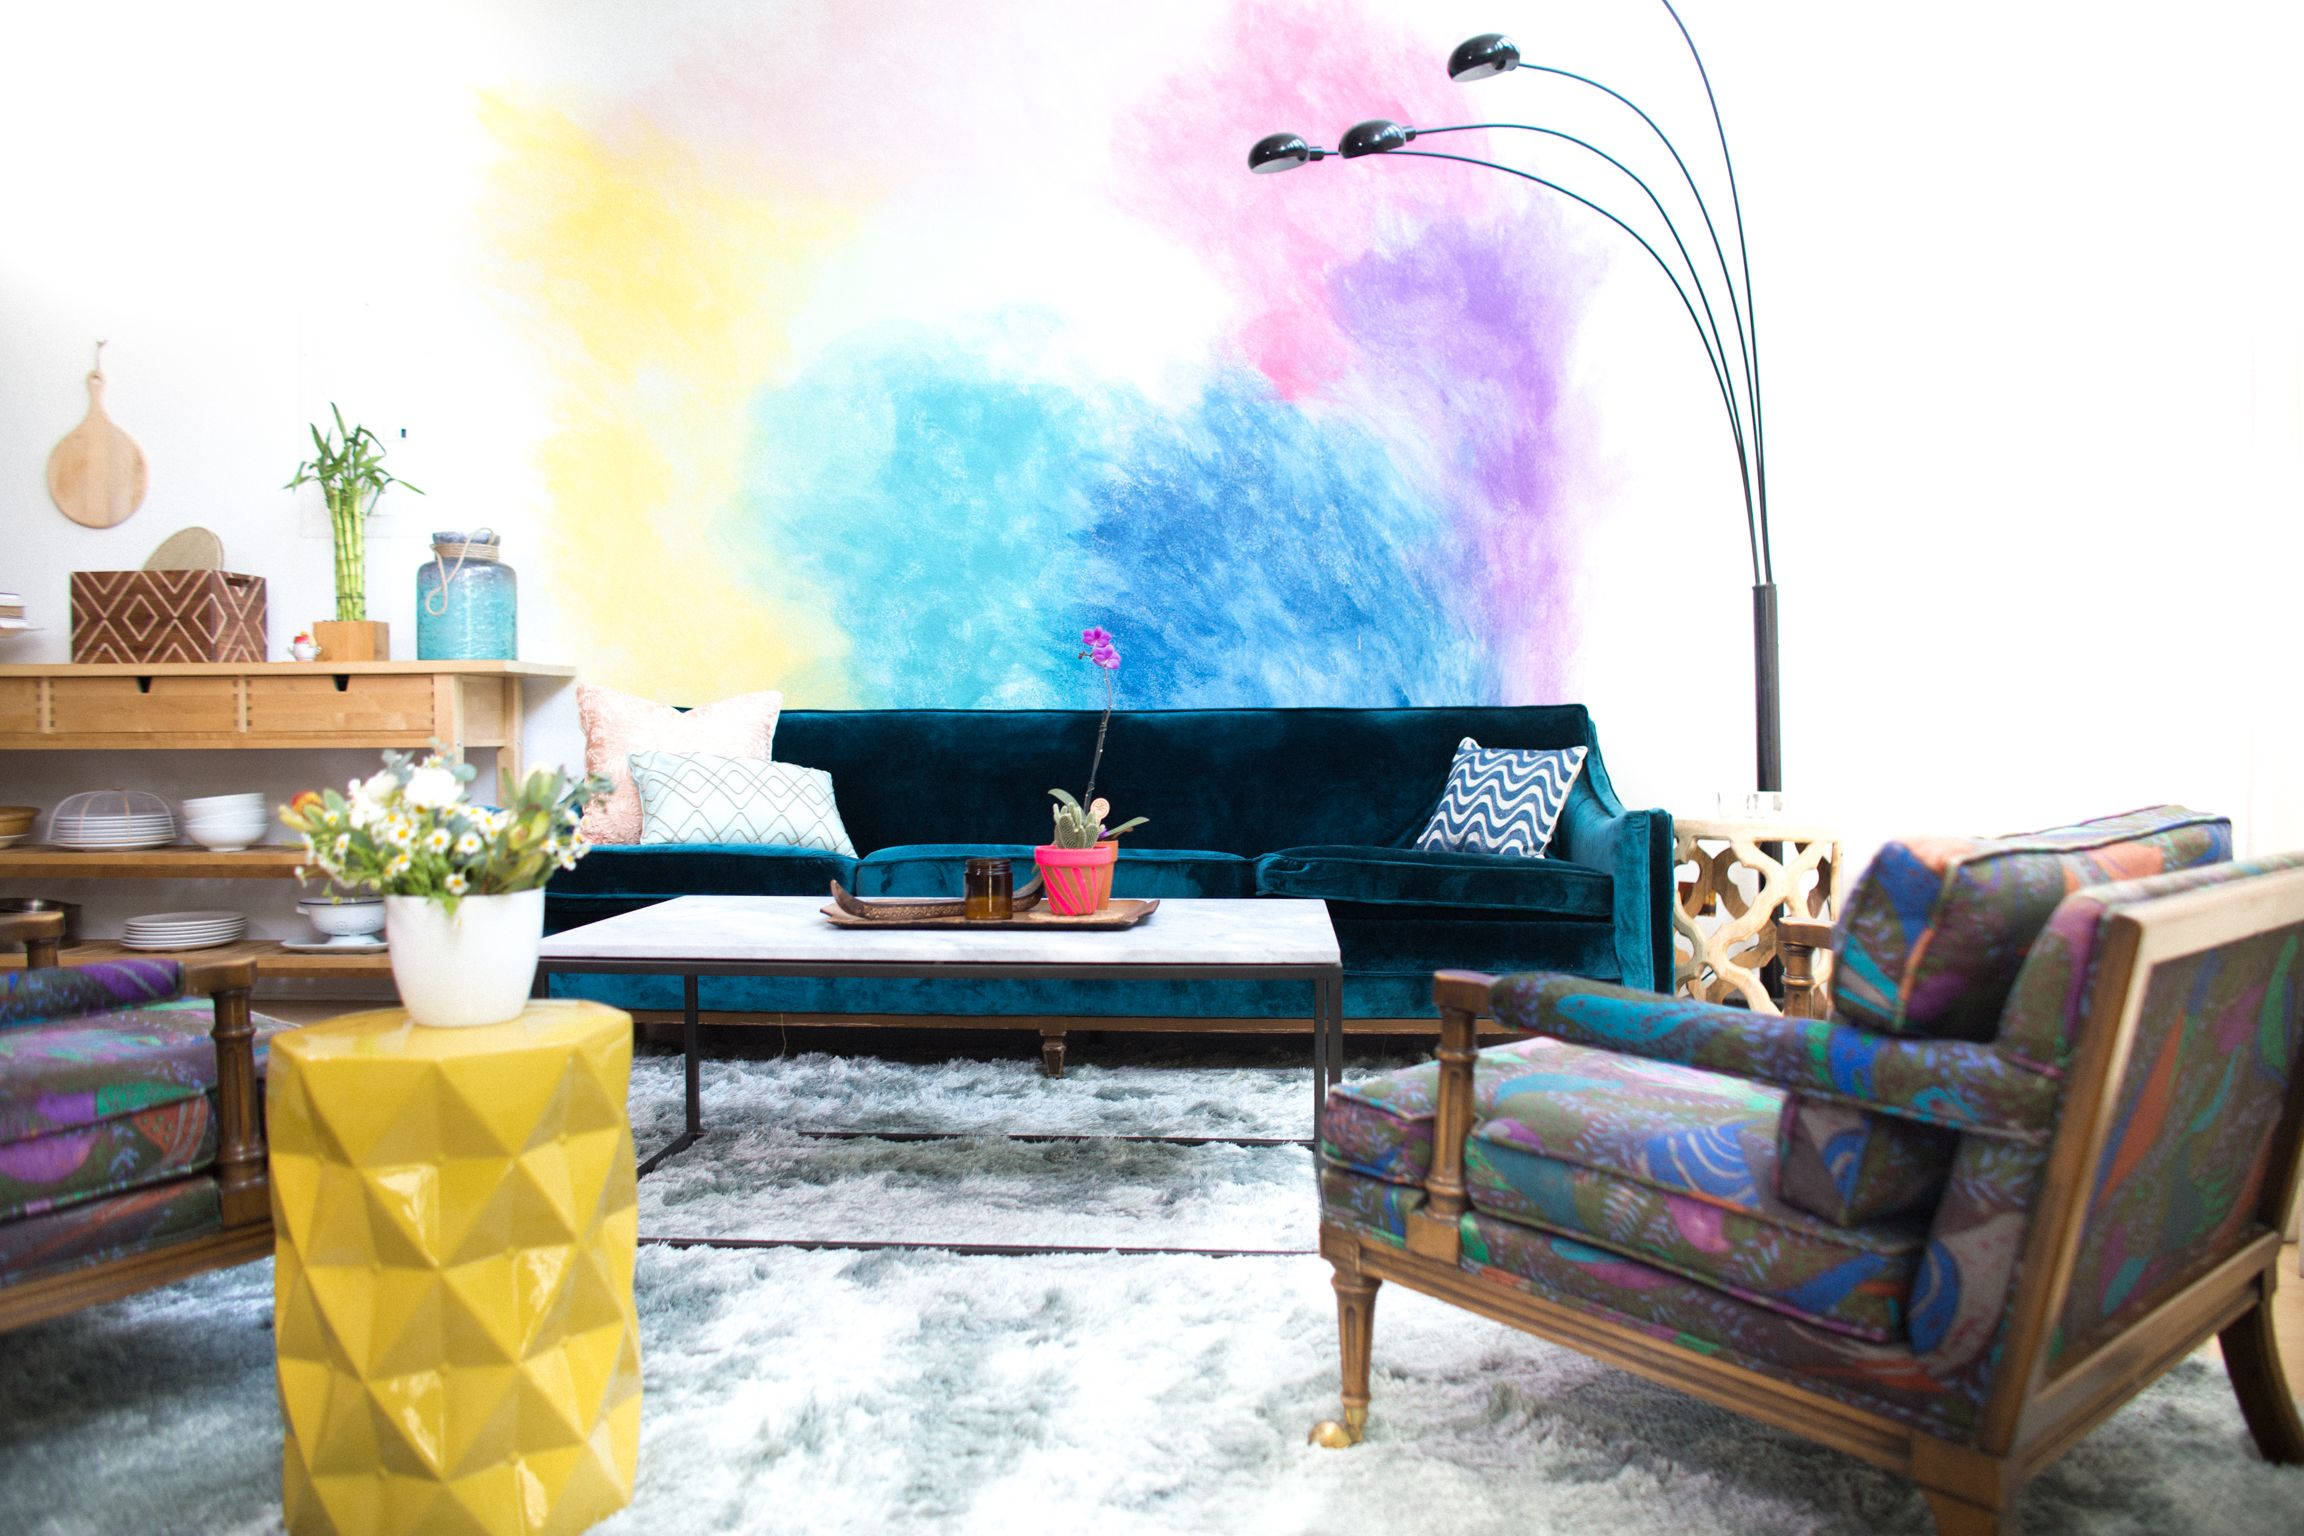 Diy Watercolor Mural Wall Watercolor Walls Decor Wall Murals